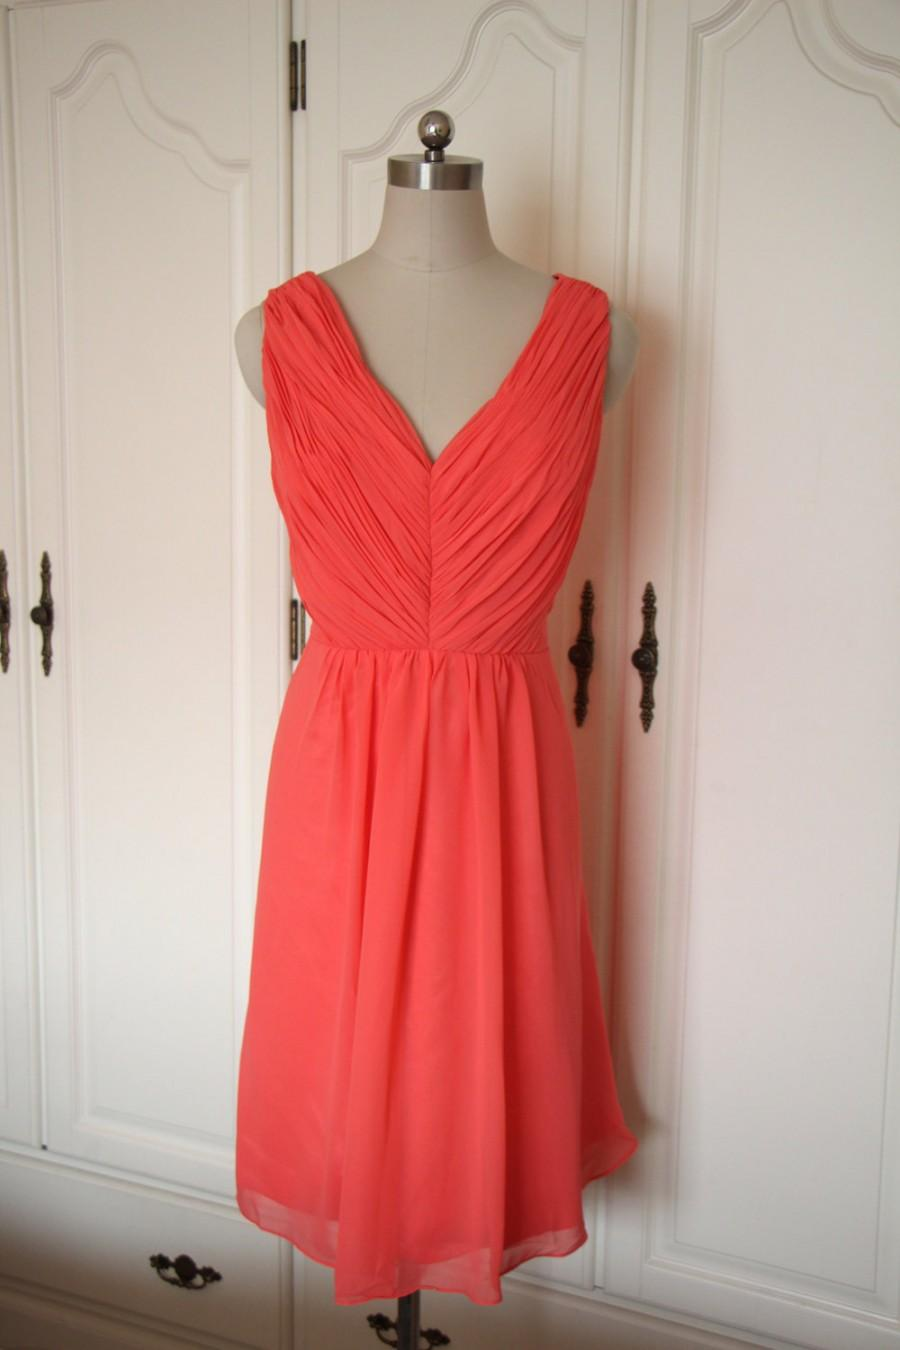 Mariage - Coral V-neck Short Bridesmaid Dress Short Chiffon Coral Bridesmaid Dress-Custom Dress